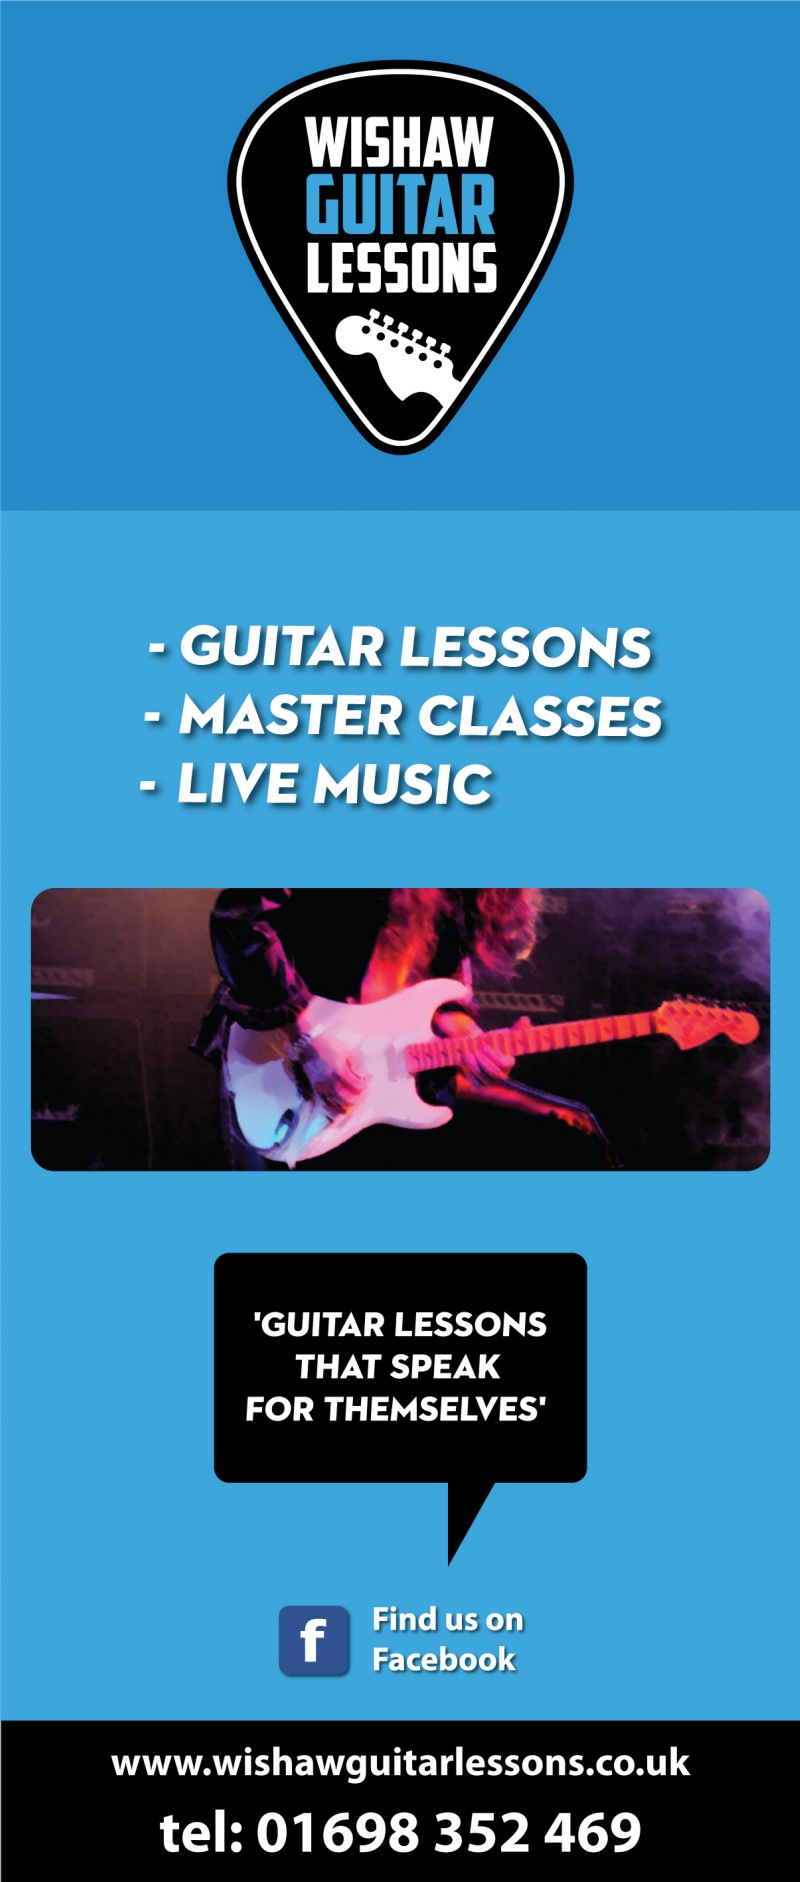 roll up banner  guitar lessons in wishaw, graphic designer london